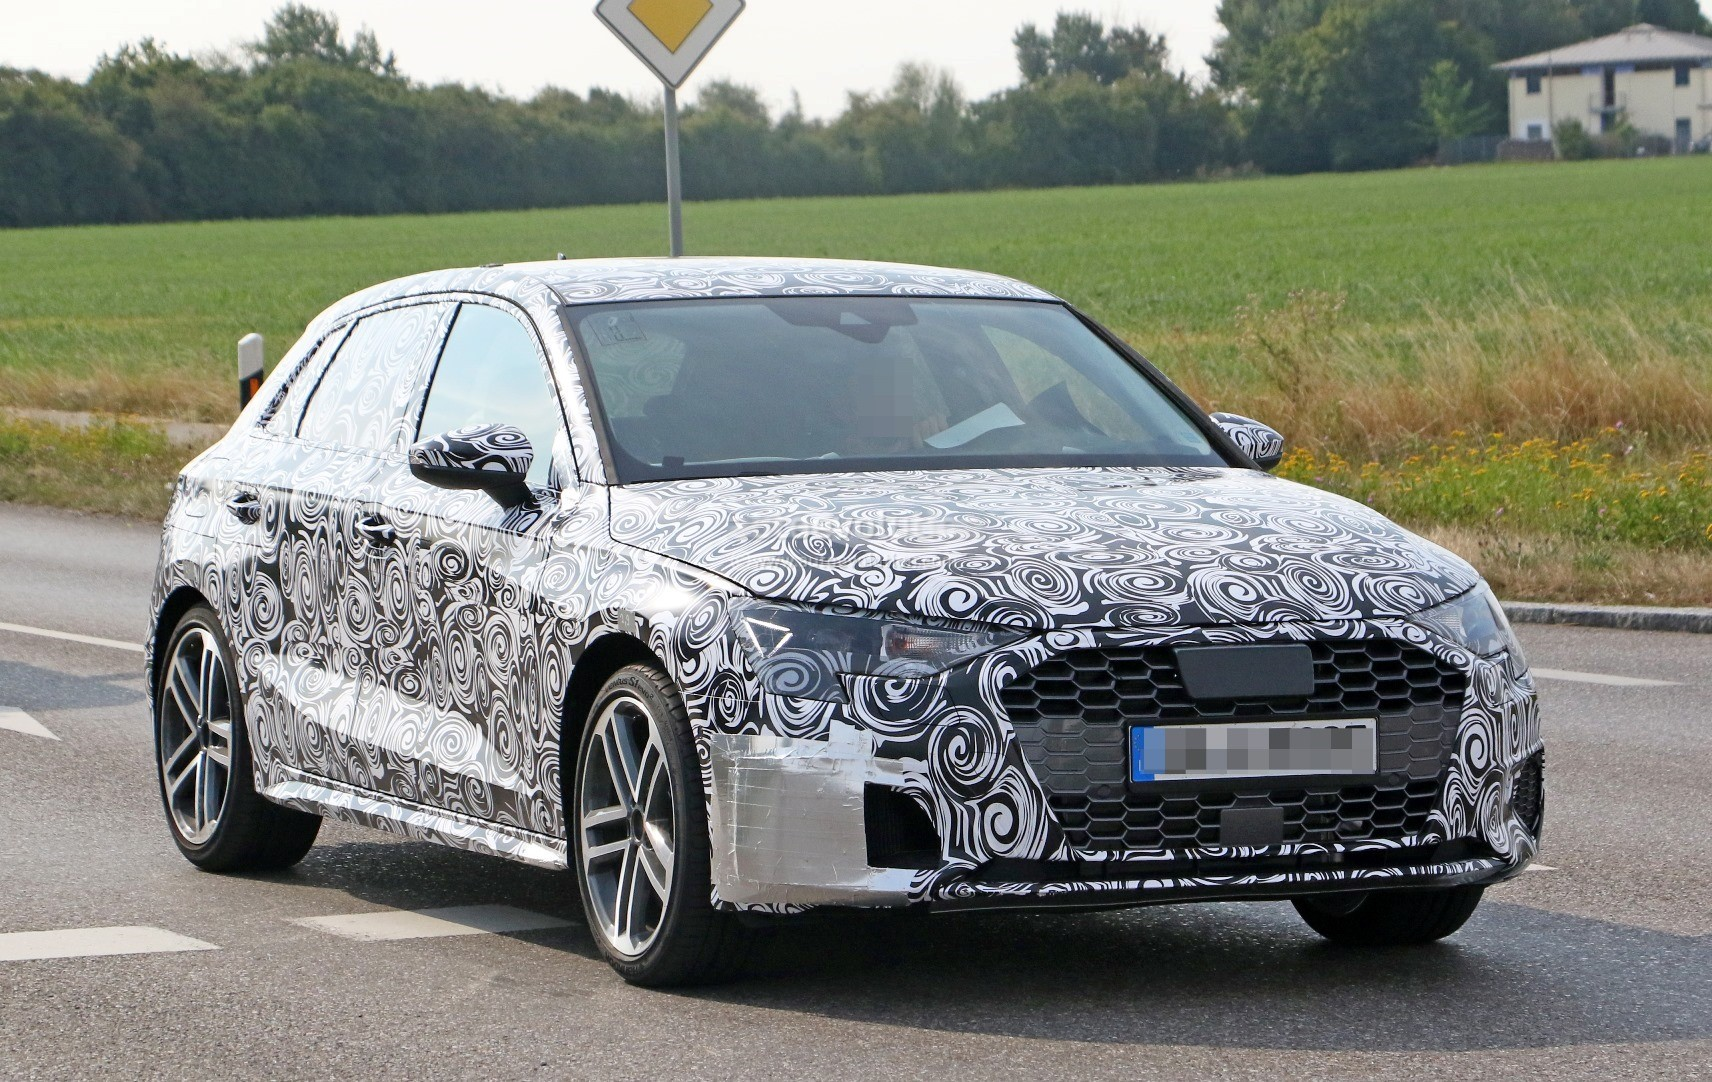 2019 Audi A3 Spied For The First Time, Quad-Exhaust System Looks Intriguing - autoevolution